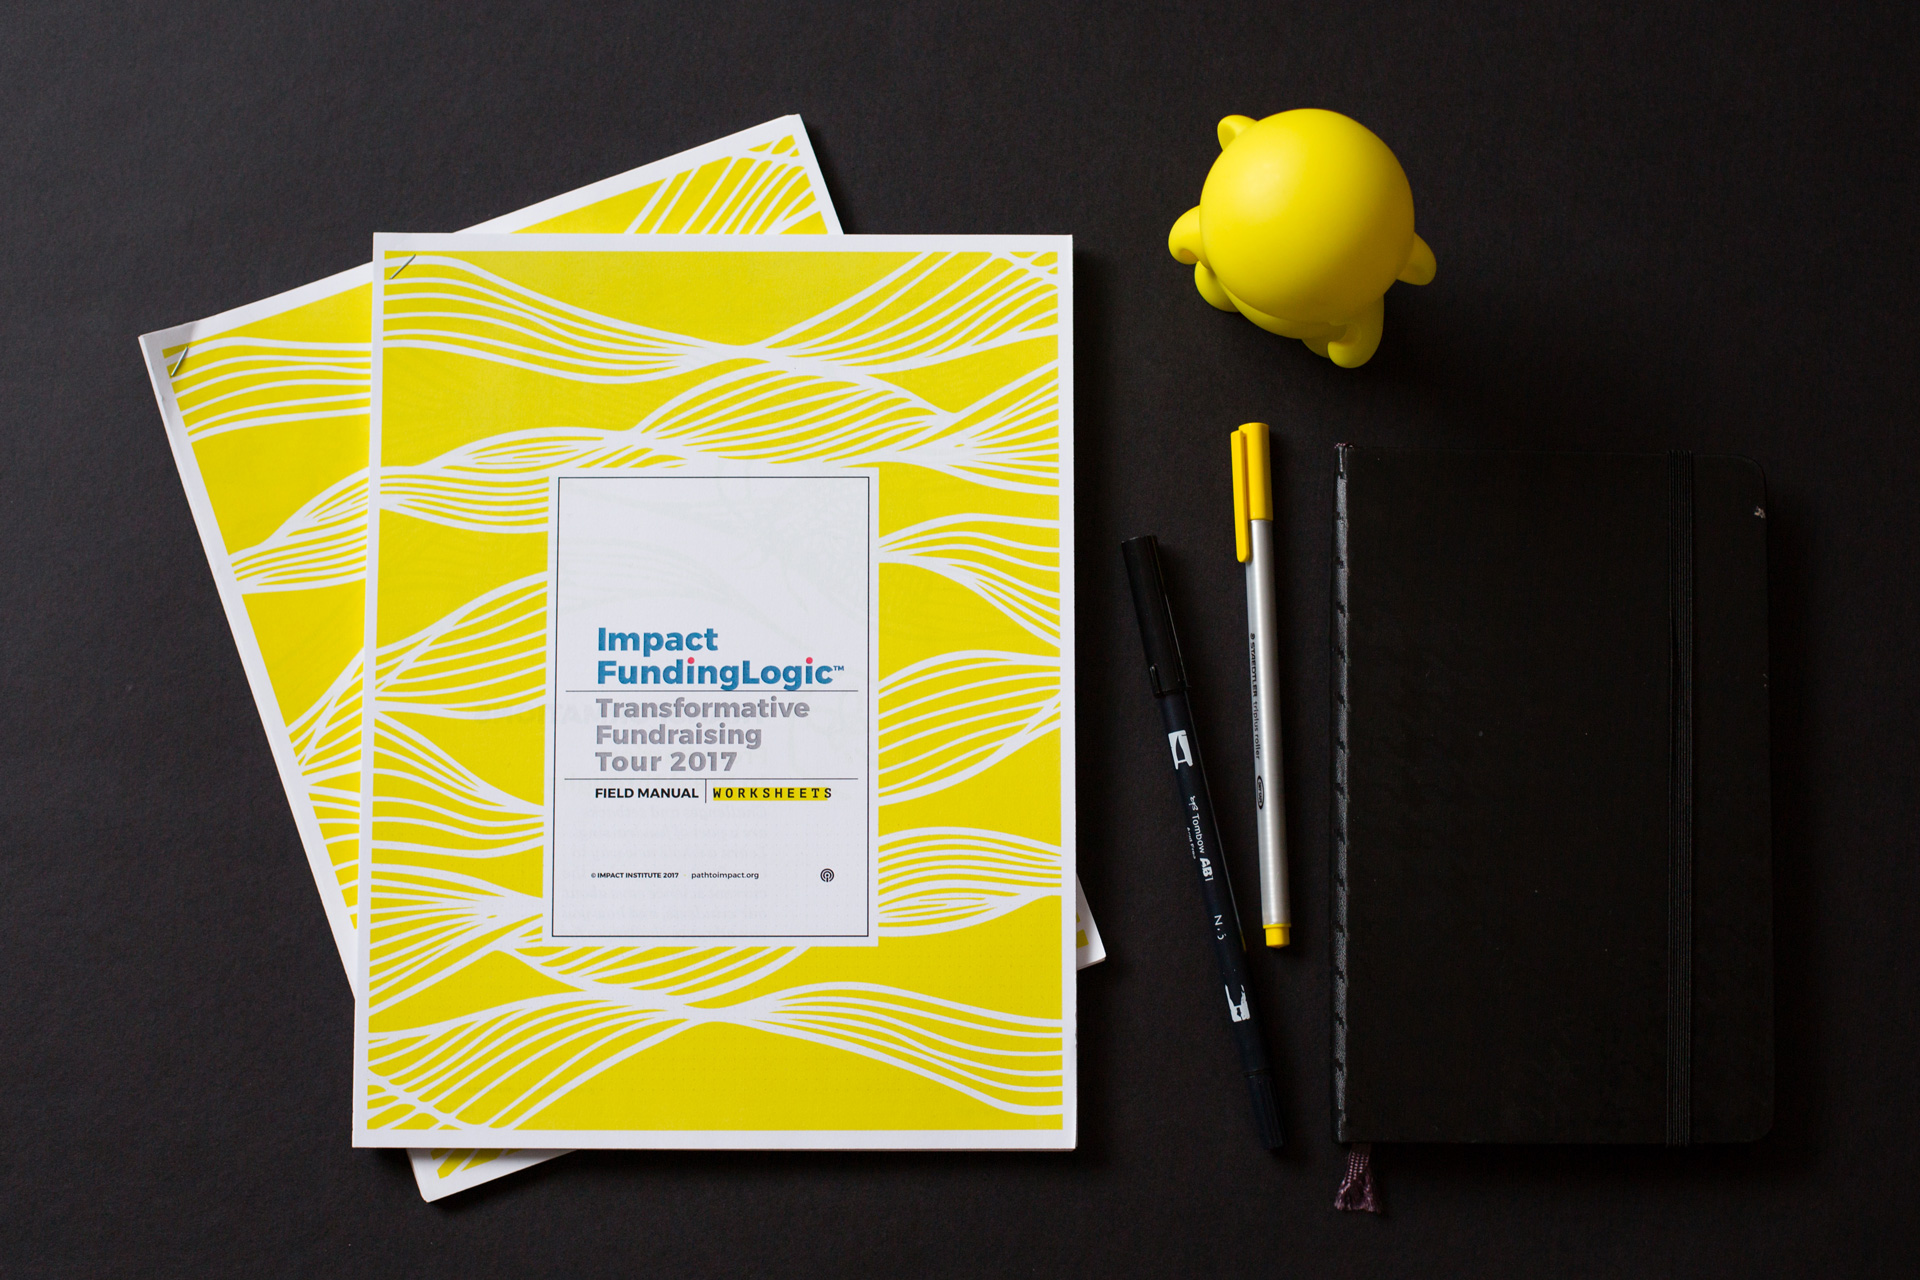 Printed Impact FundingLogic packet with yellow cover next to pens and a yellow munny figurine on a black background